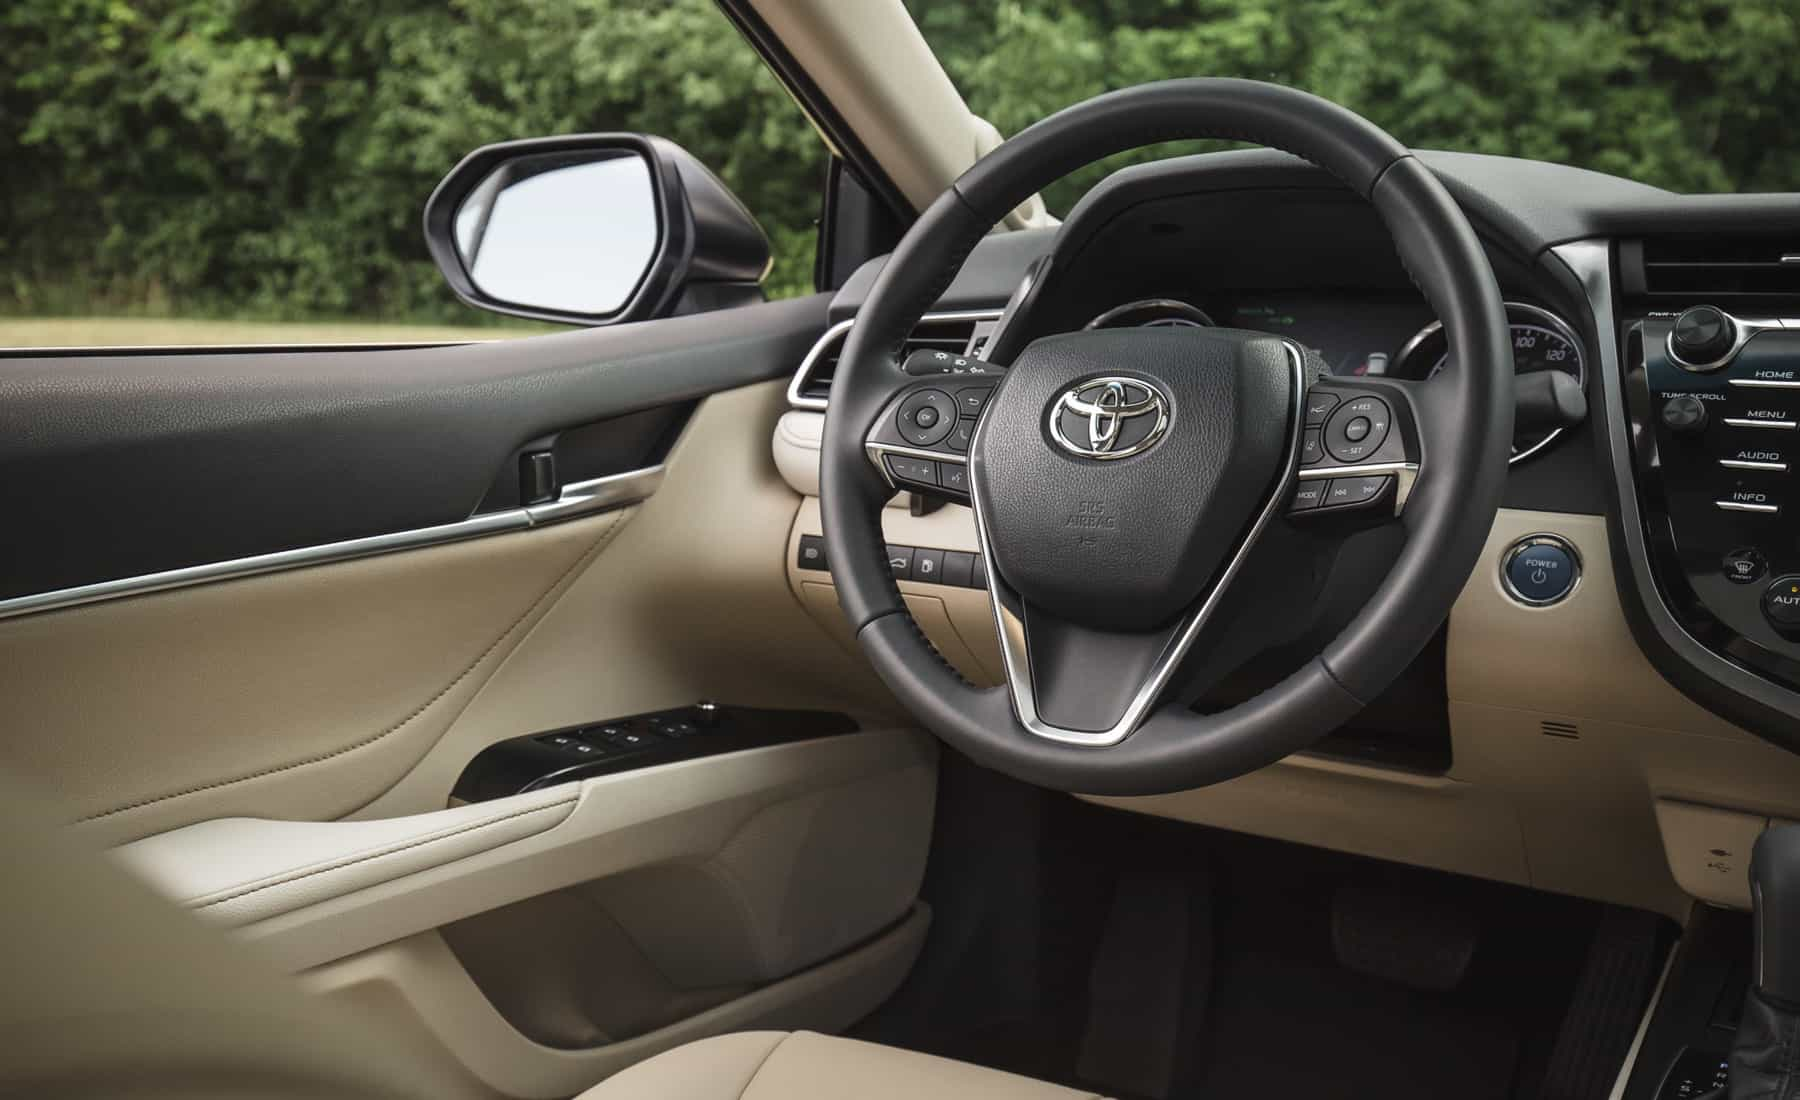 2018 Toyota Camry Hybrid XLE Interior Driver Cockpit (Photo 19 of 41)